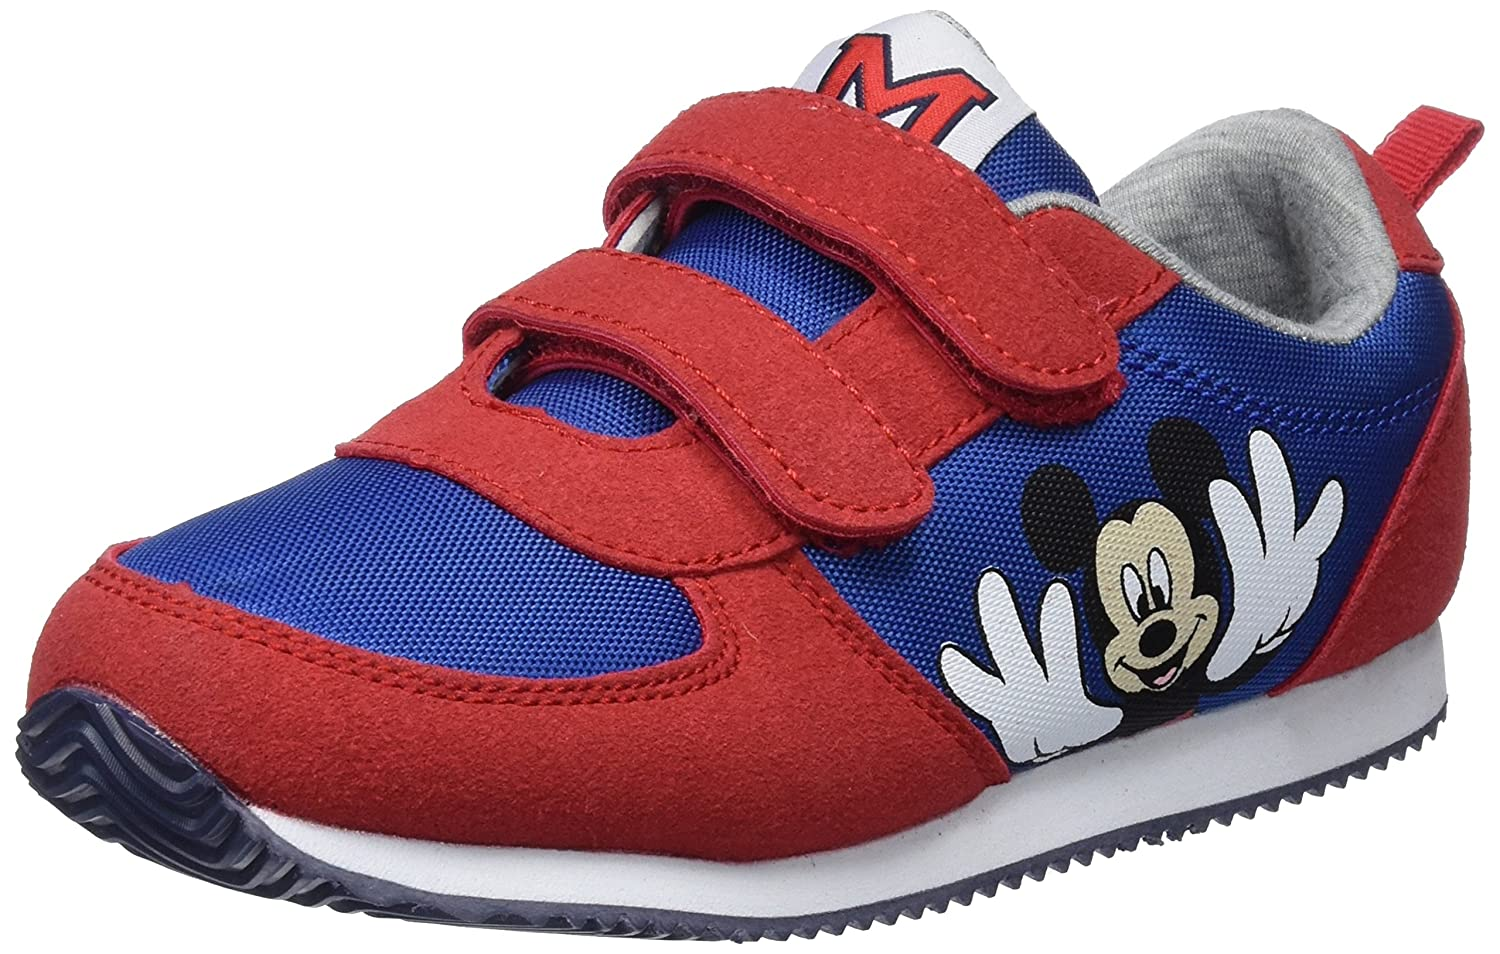 Zippy Dis Trainers Velcro Pu Red, Scape per Sport Outdoor Bambino 18-1663 Tc